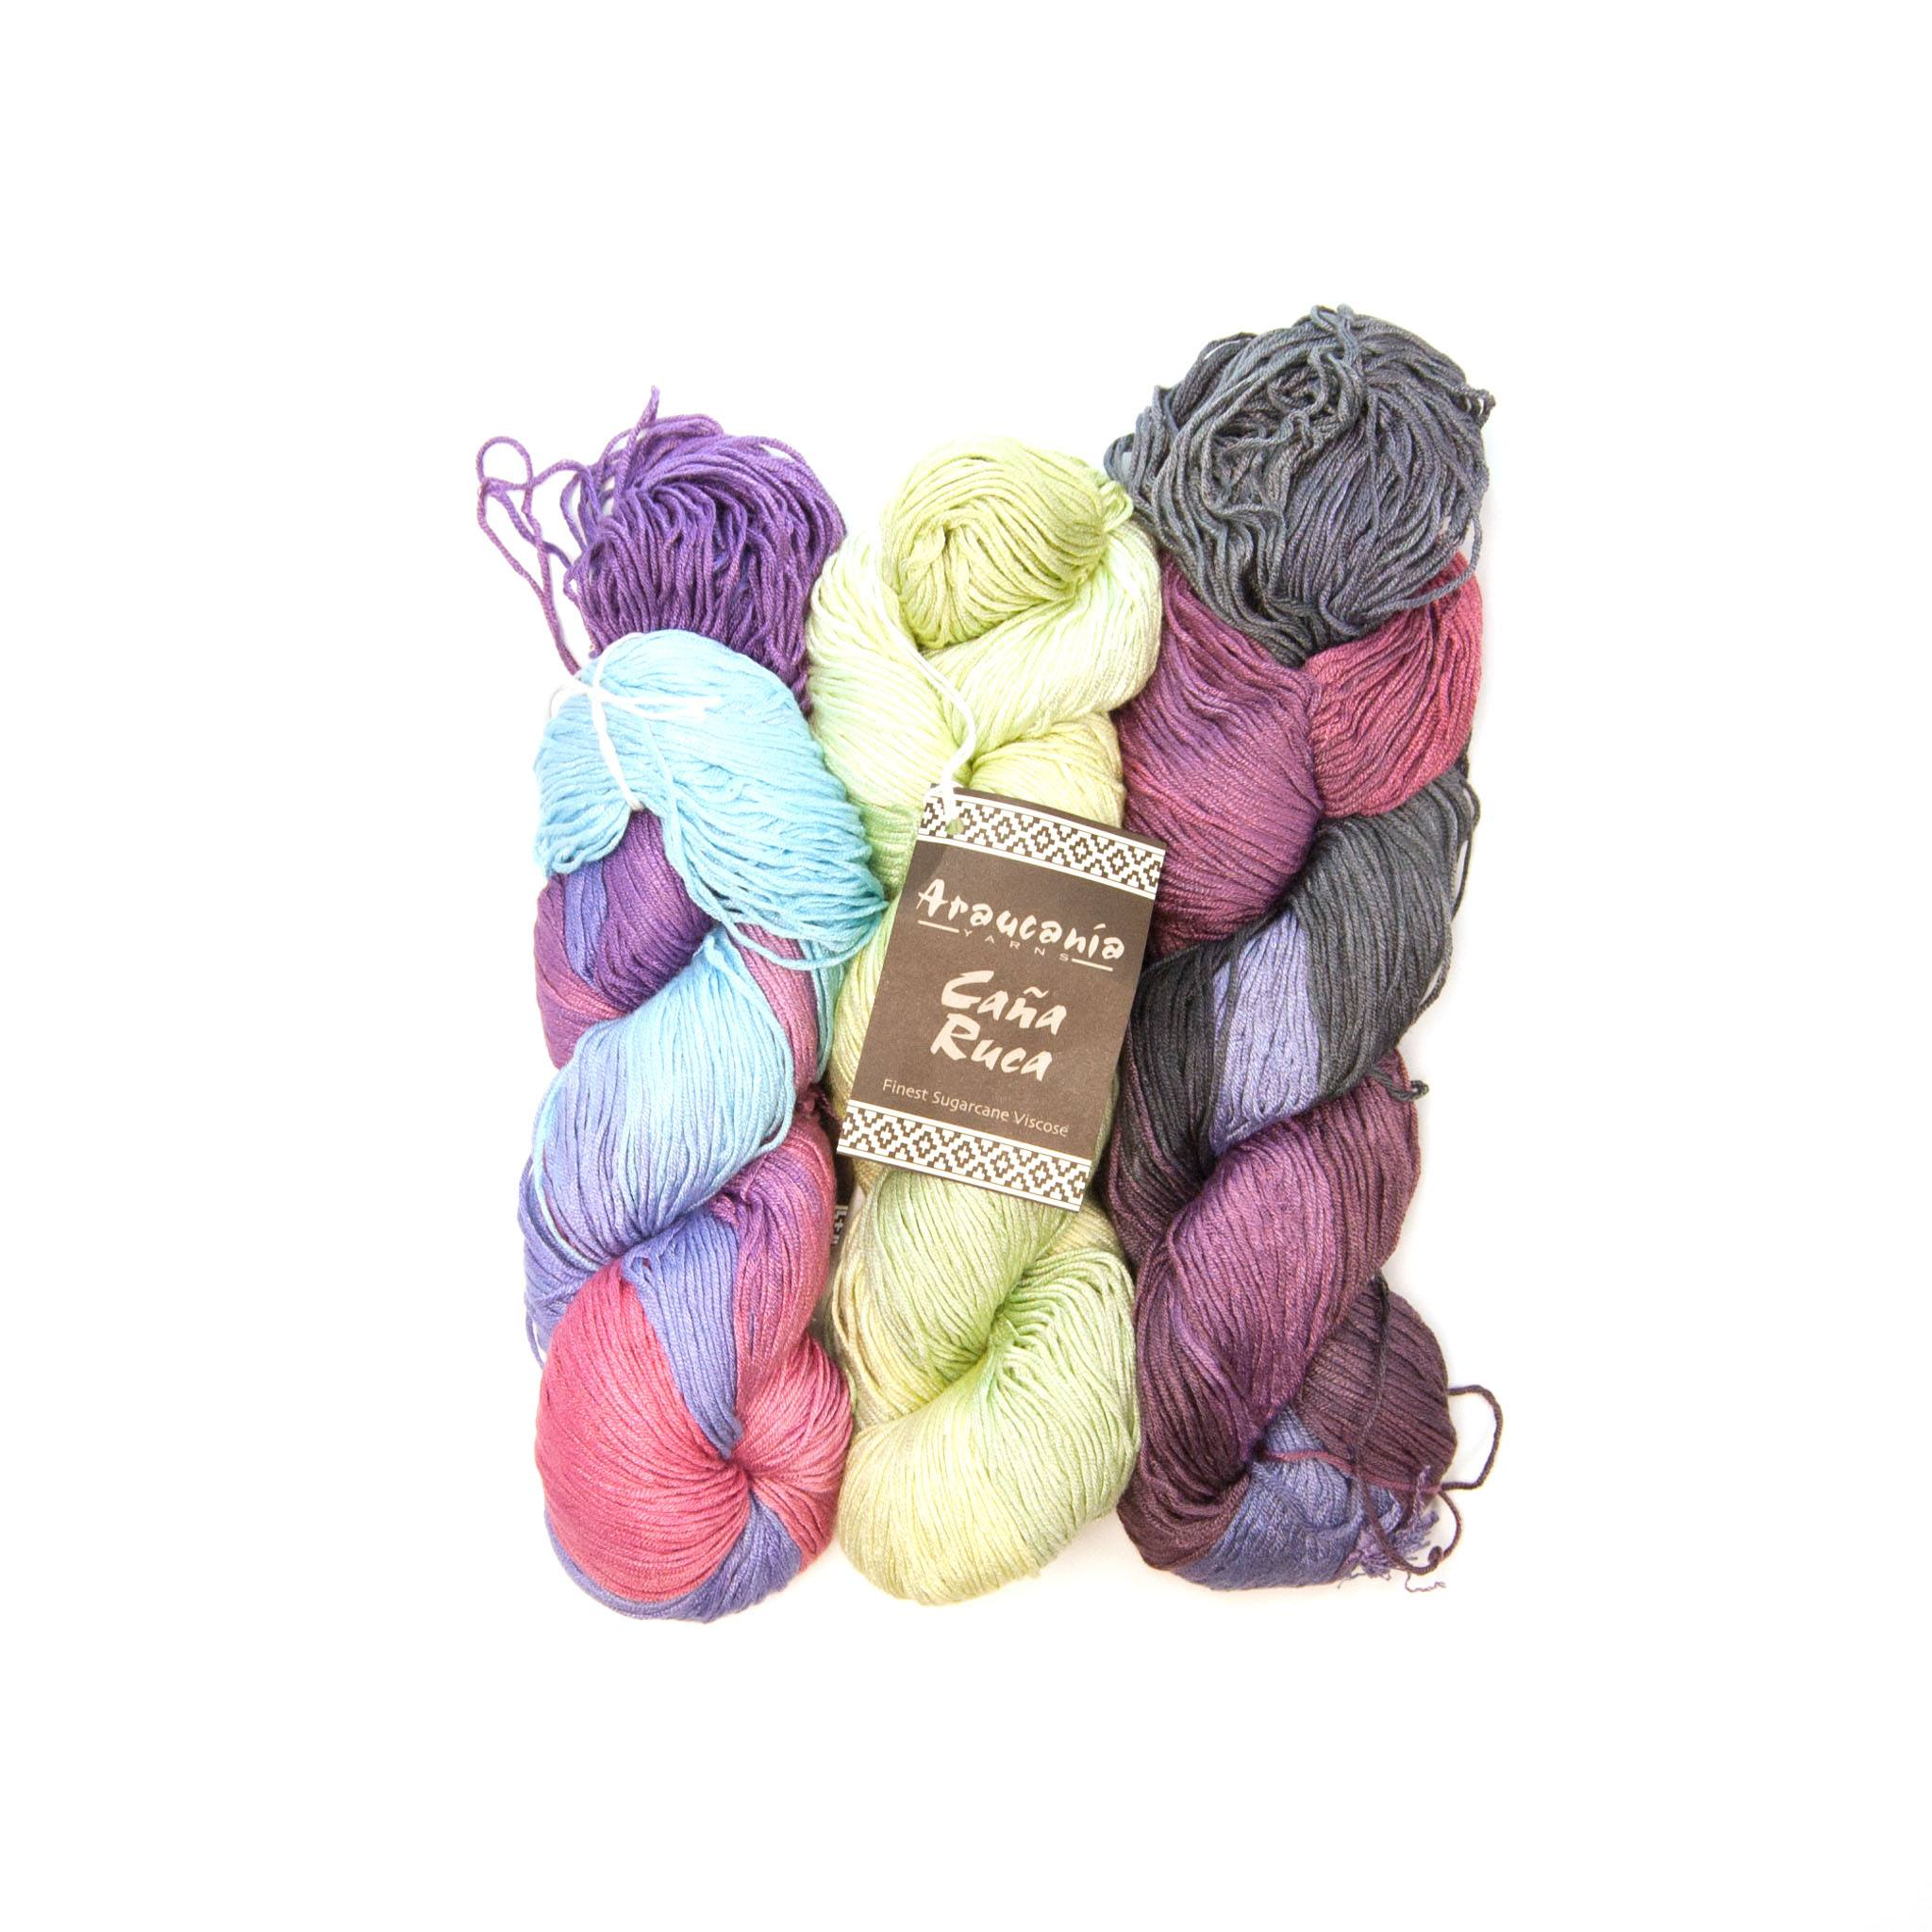 Cana Ruca Yarn at the Skein Shop